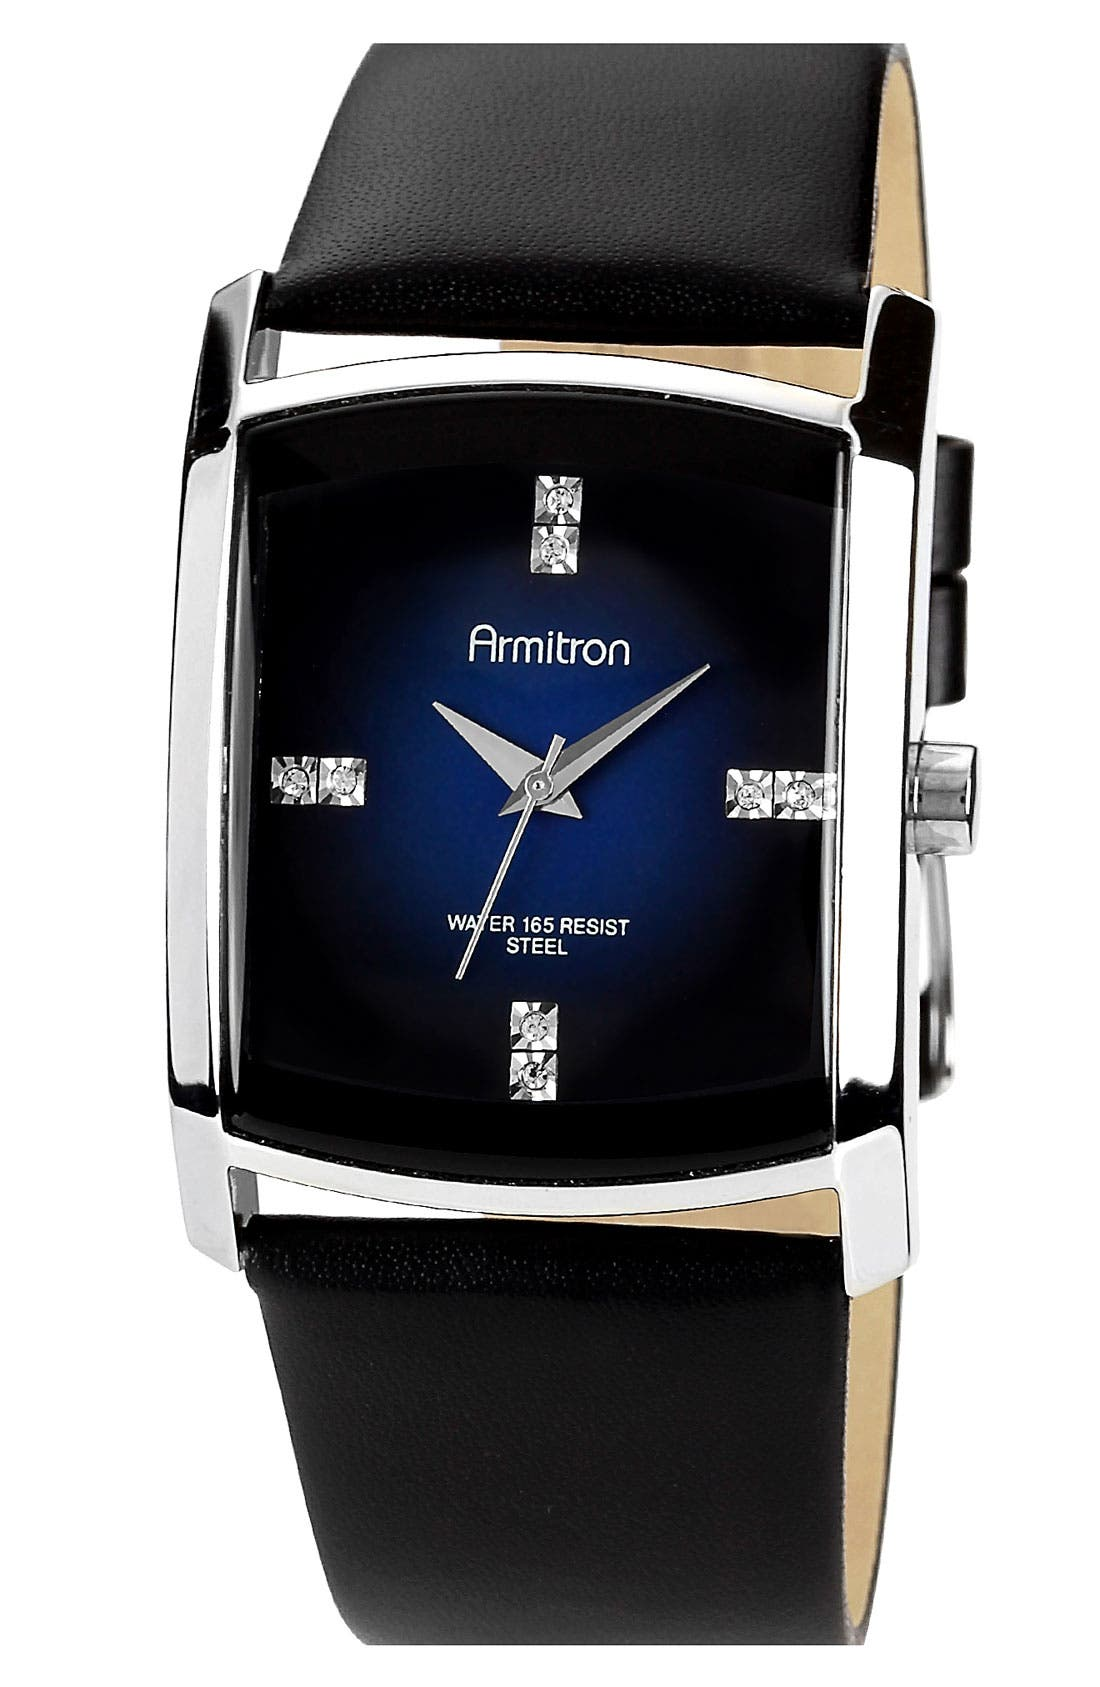 Main Image - Armitron Square Dial Leather Strap Watch, 33mm x 35mm